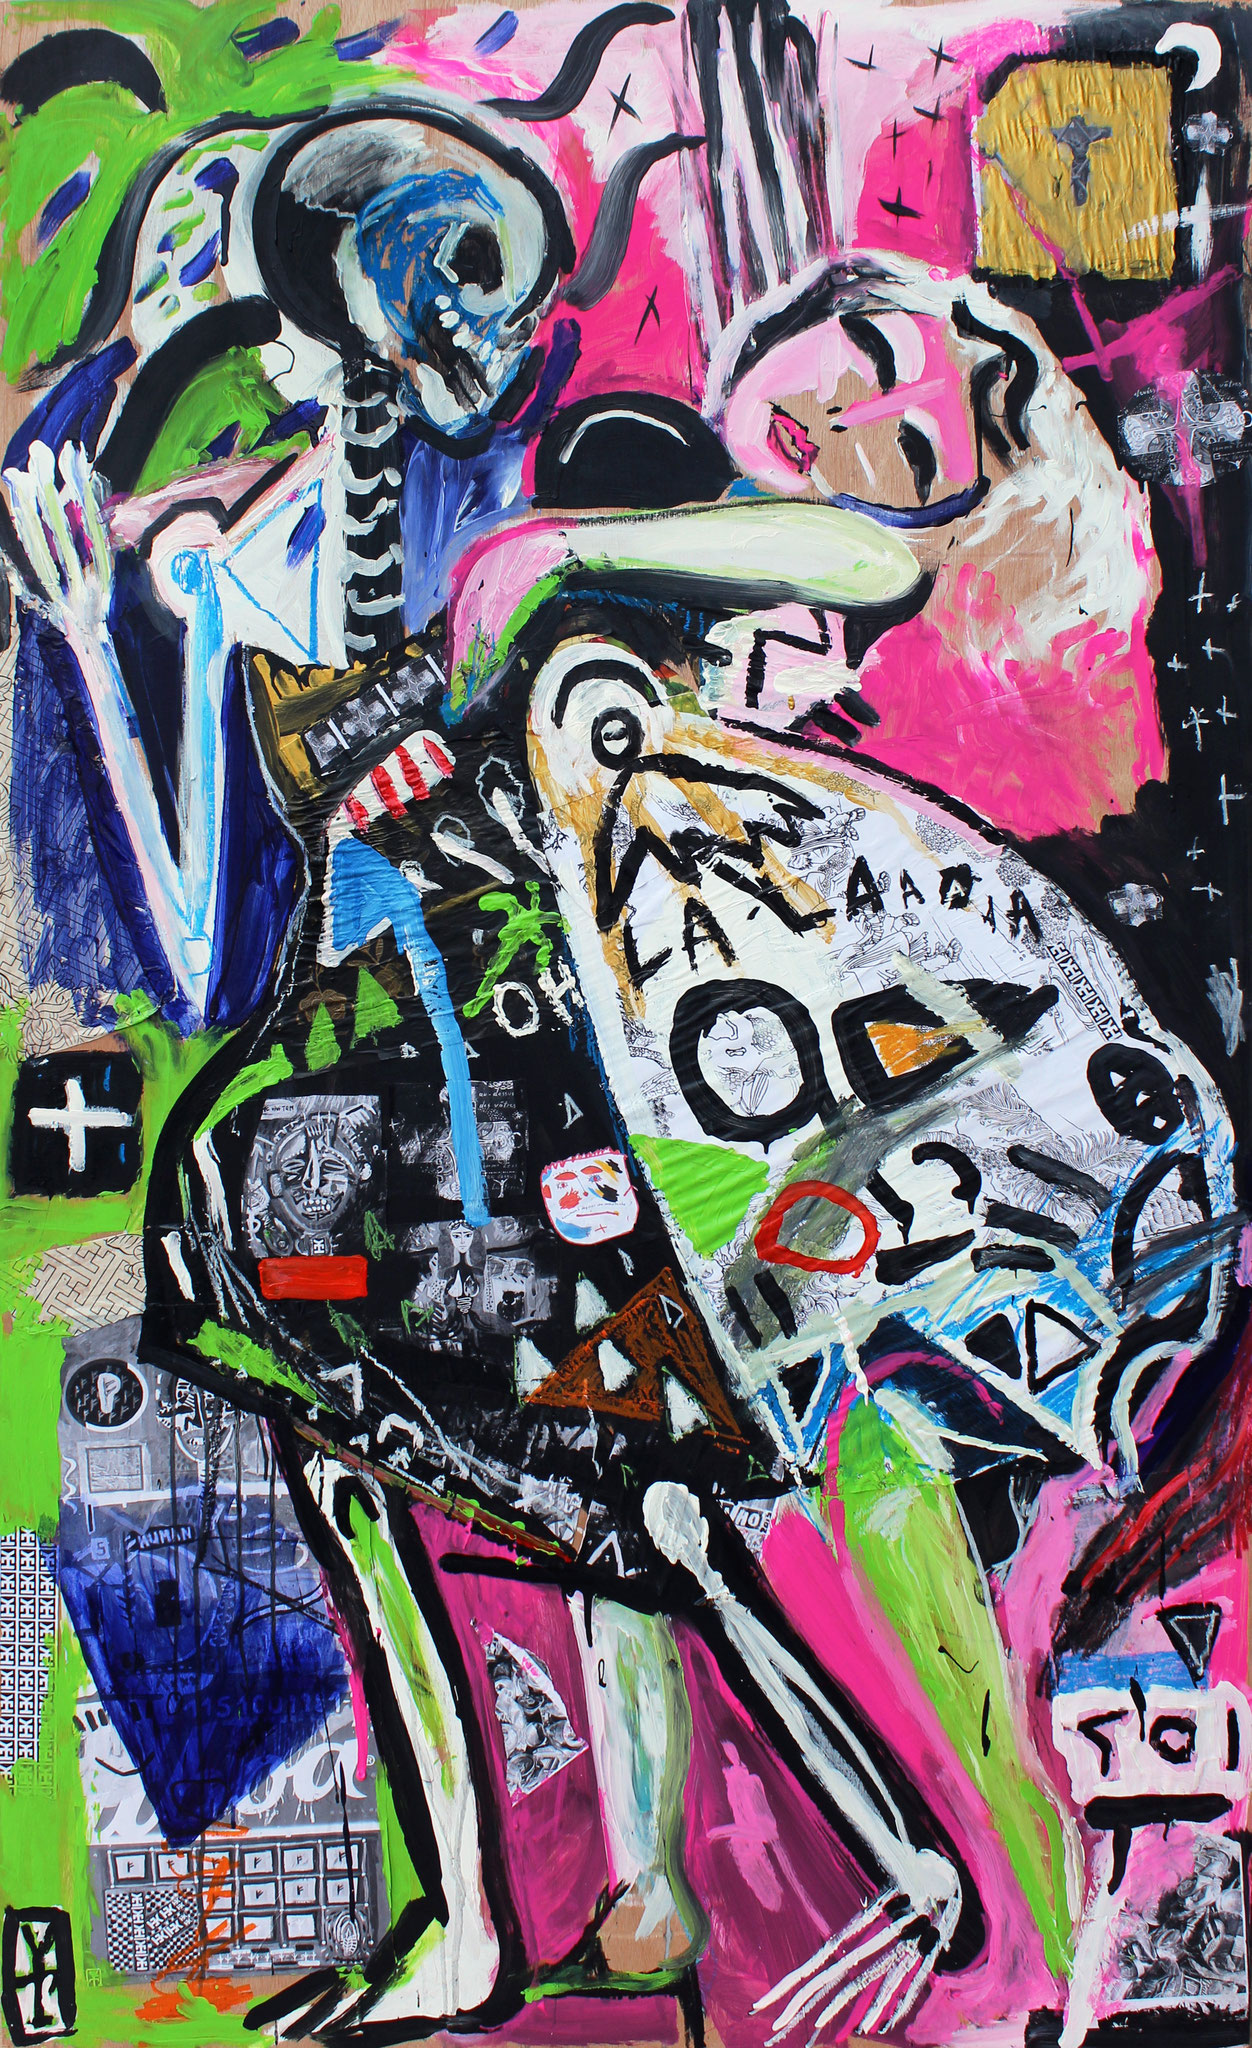 OH LA LA! - Acrylic, oil pastels and collage on wood - 36.5x72inch/ 2016